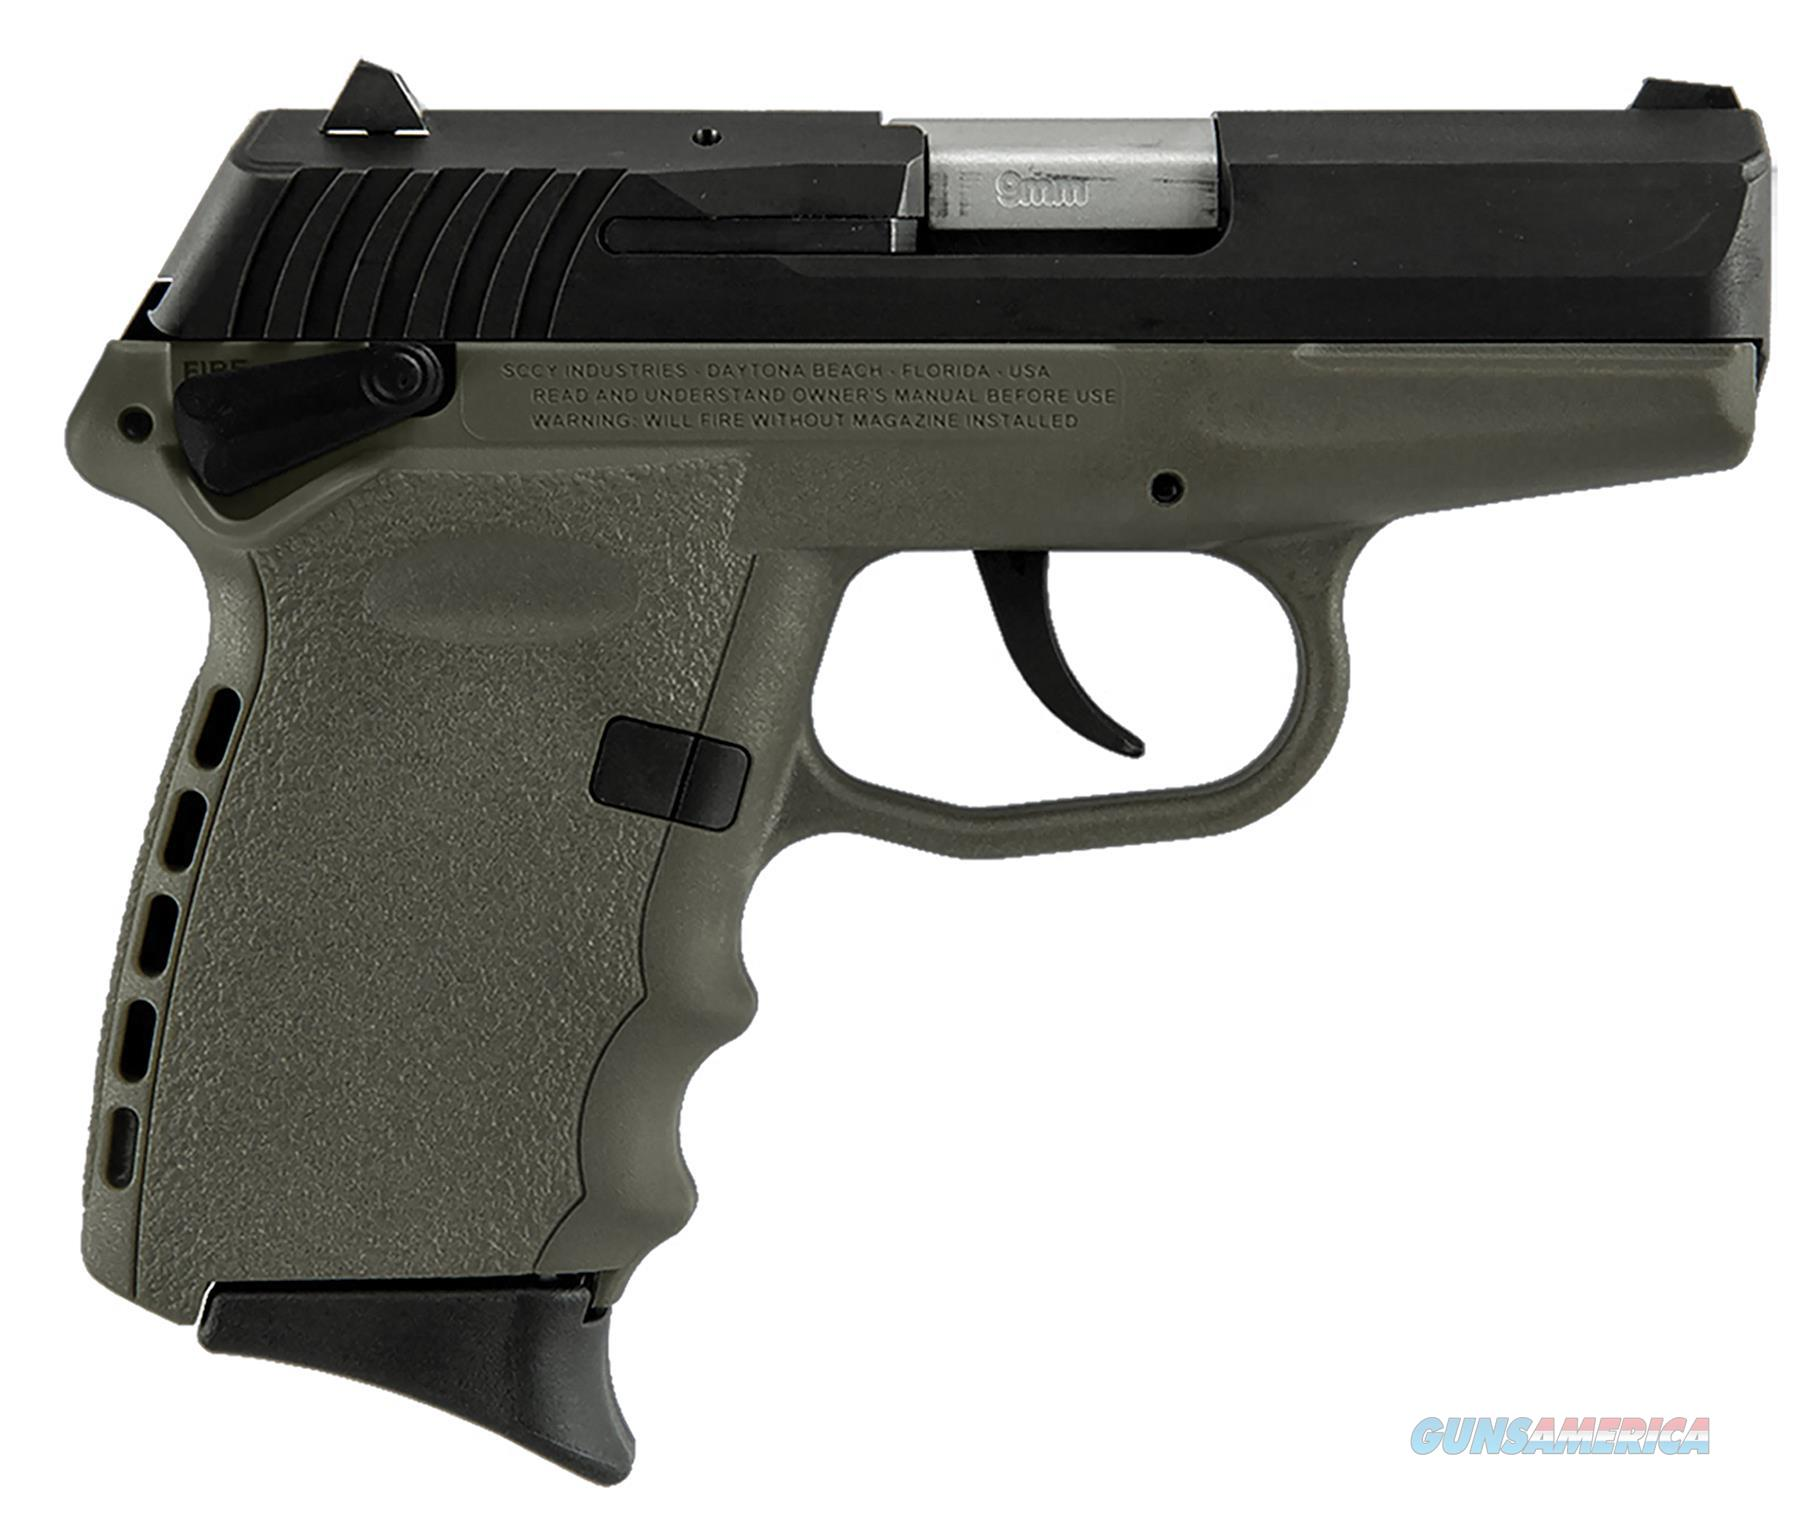 Sccy Industries Cpx-1 9Mm 3.1 10Rd Fde Ambi Safety CPX1-CBDE  Guns > Pistols > S Misc Pistols